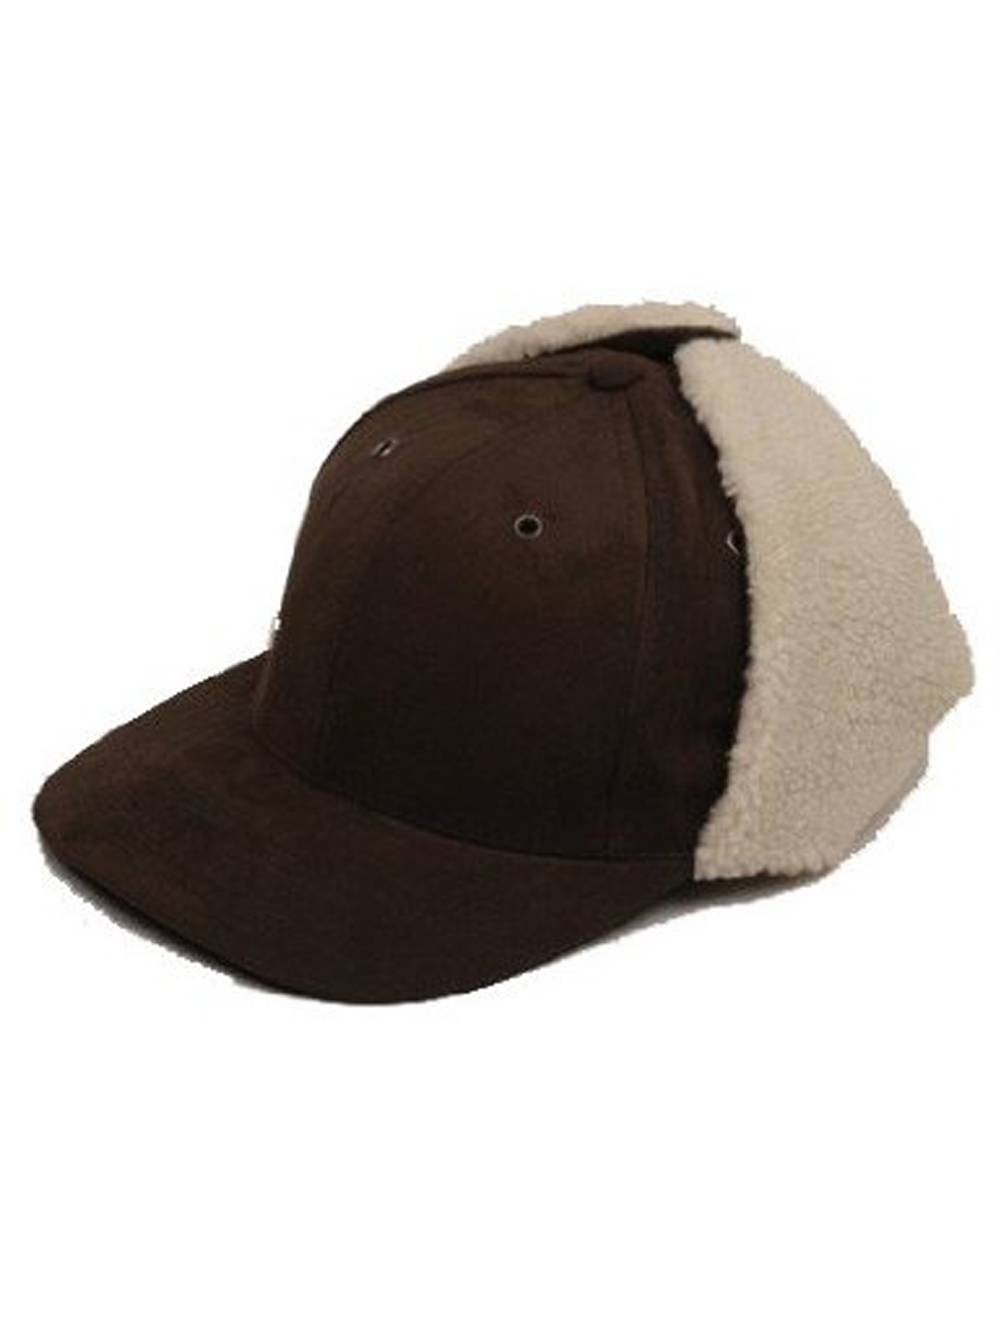 c93418e33 Blank Apparel Winter Trapper Cotton Fur Flap Hunting Hat - Large/XL, Brown